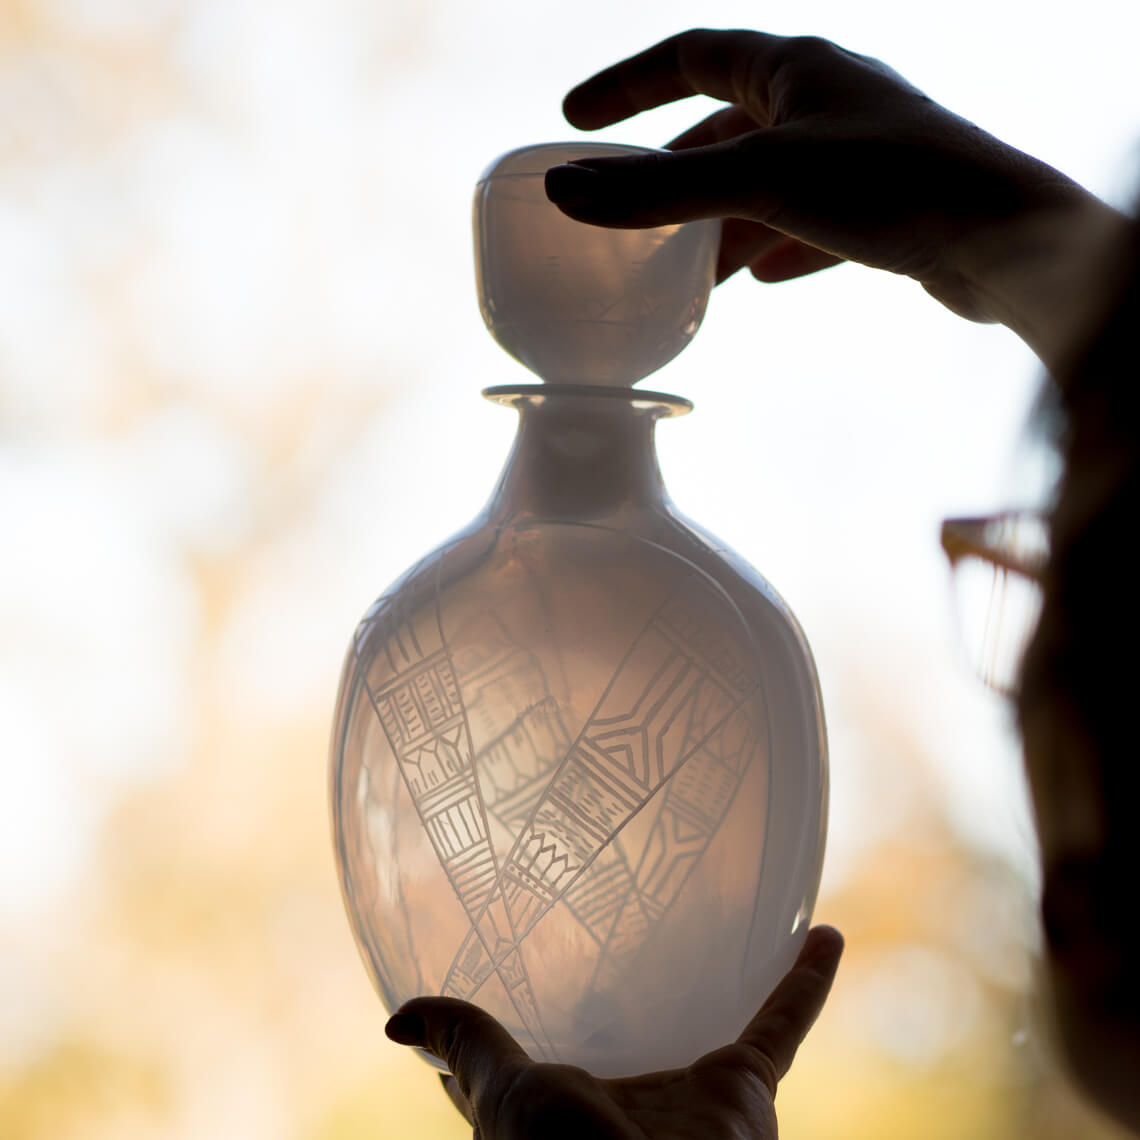 Translucent white glass decanter being held up to the light. The glass is engraved with geometric patterns